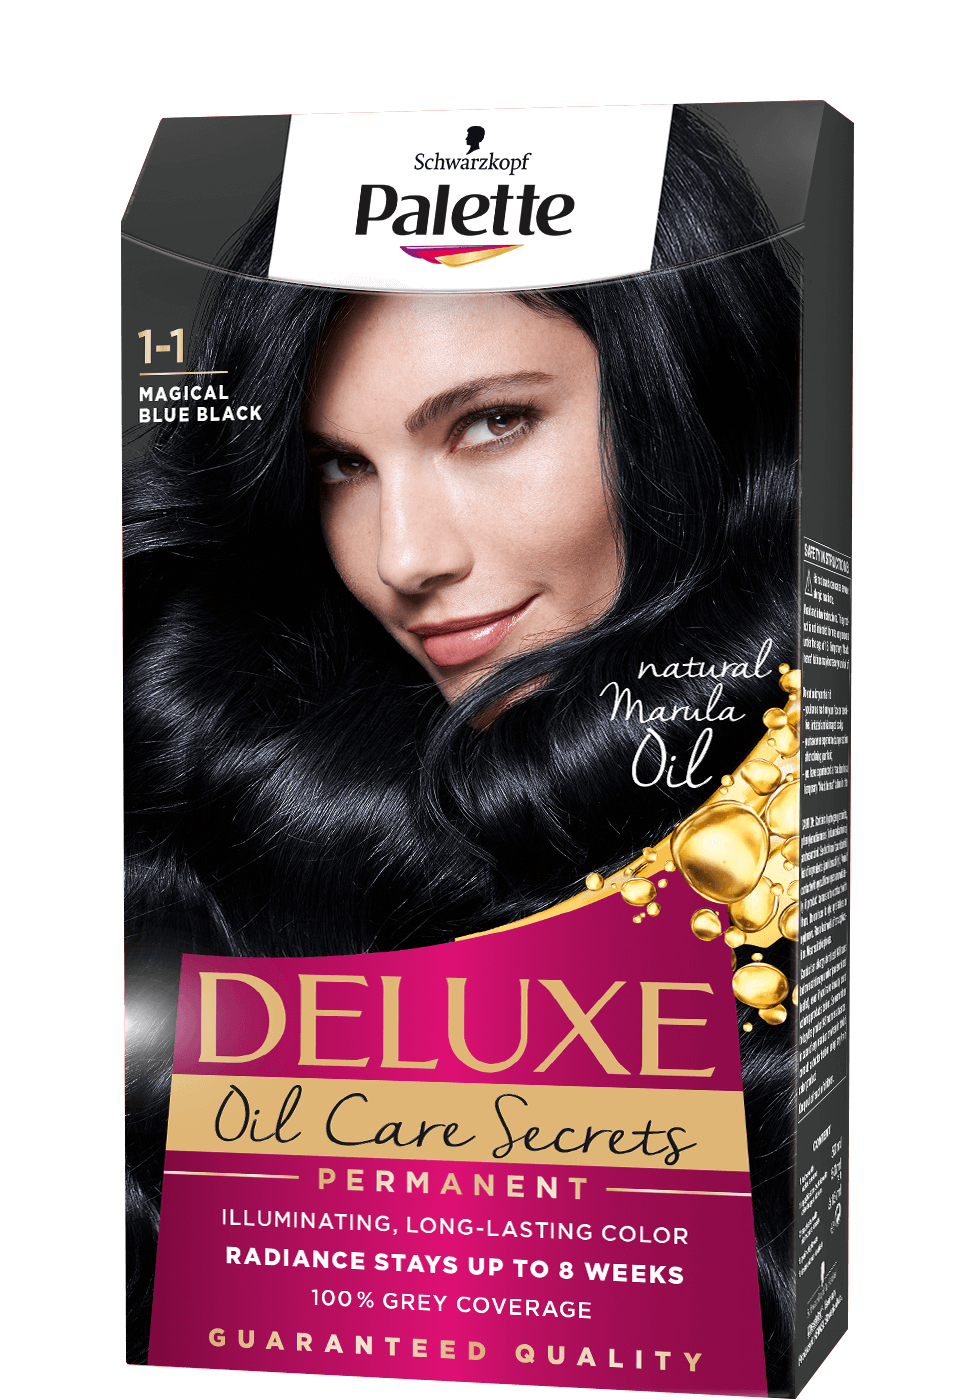 palette_com_oil_care_secrets_1_1_magical_blue_black_970x1400